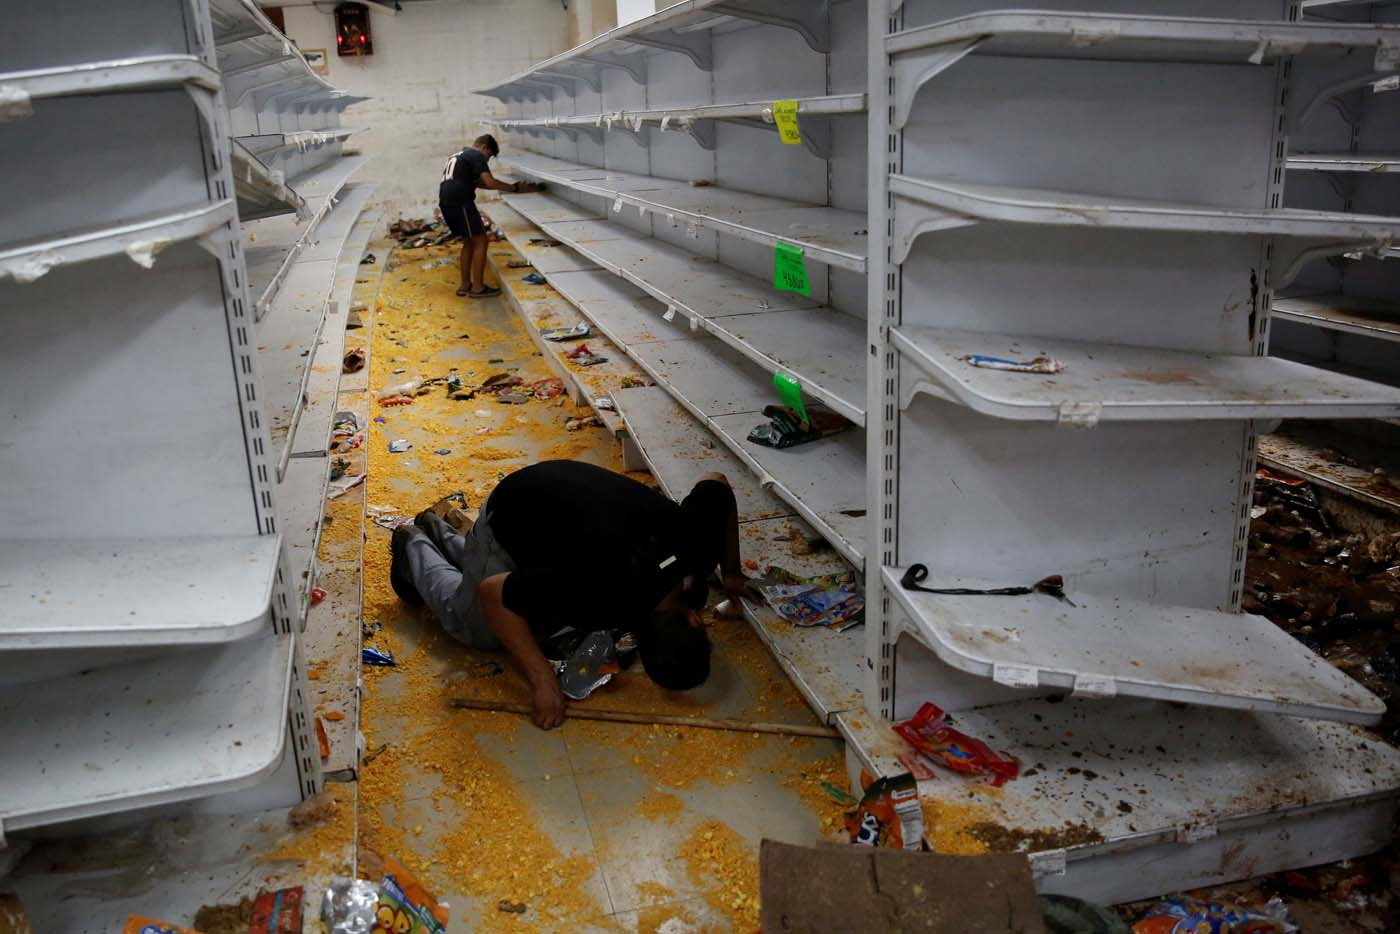 Workers look for valuables among the damaged goods in a supermarket, after it was looted in Caracas, Venezuela April 21, 2017. REUTERS/Carlos Garcia Rawlins